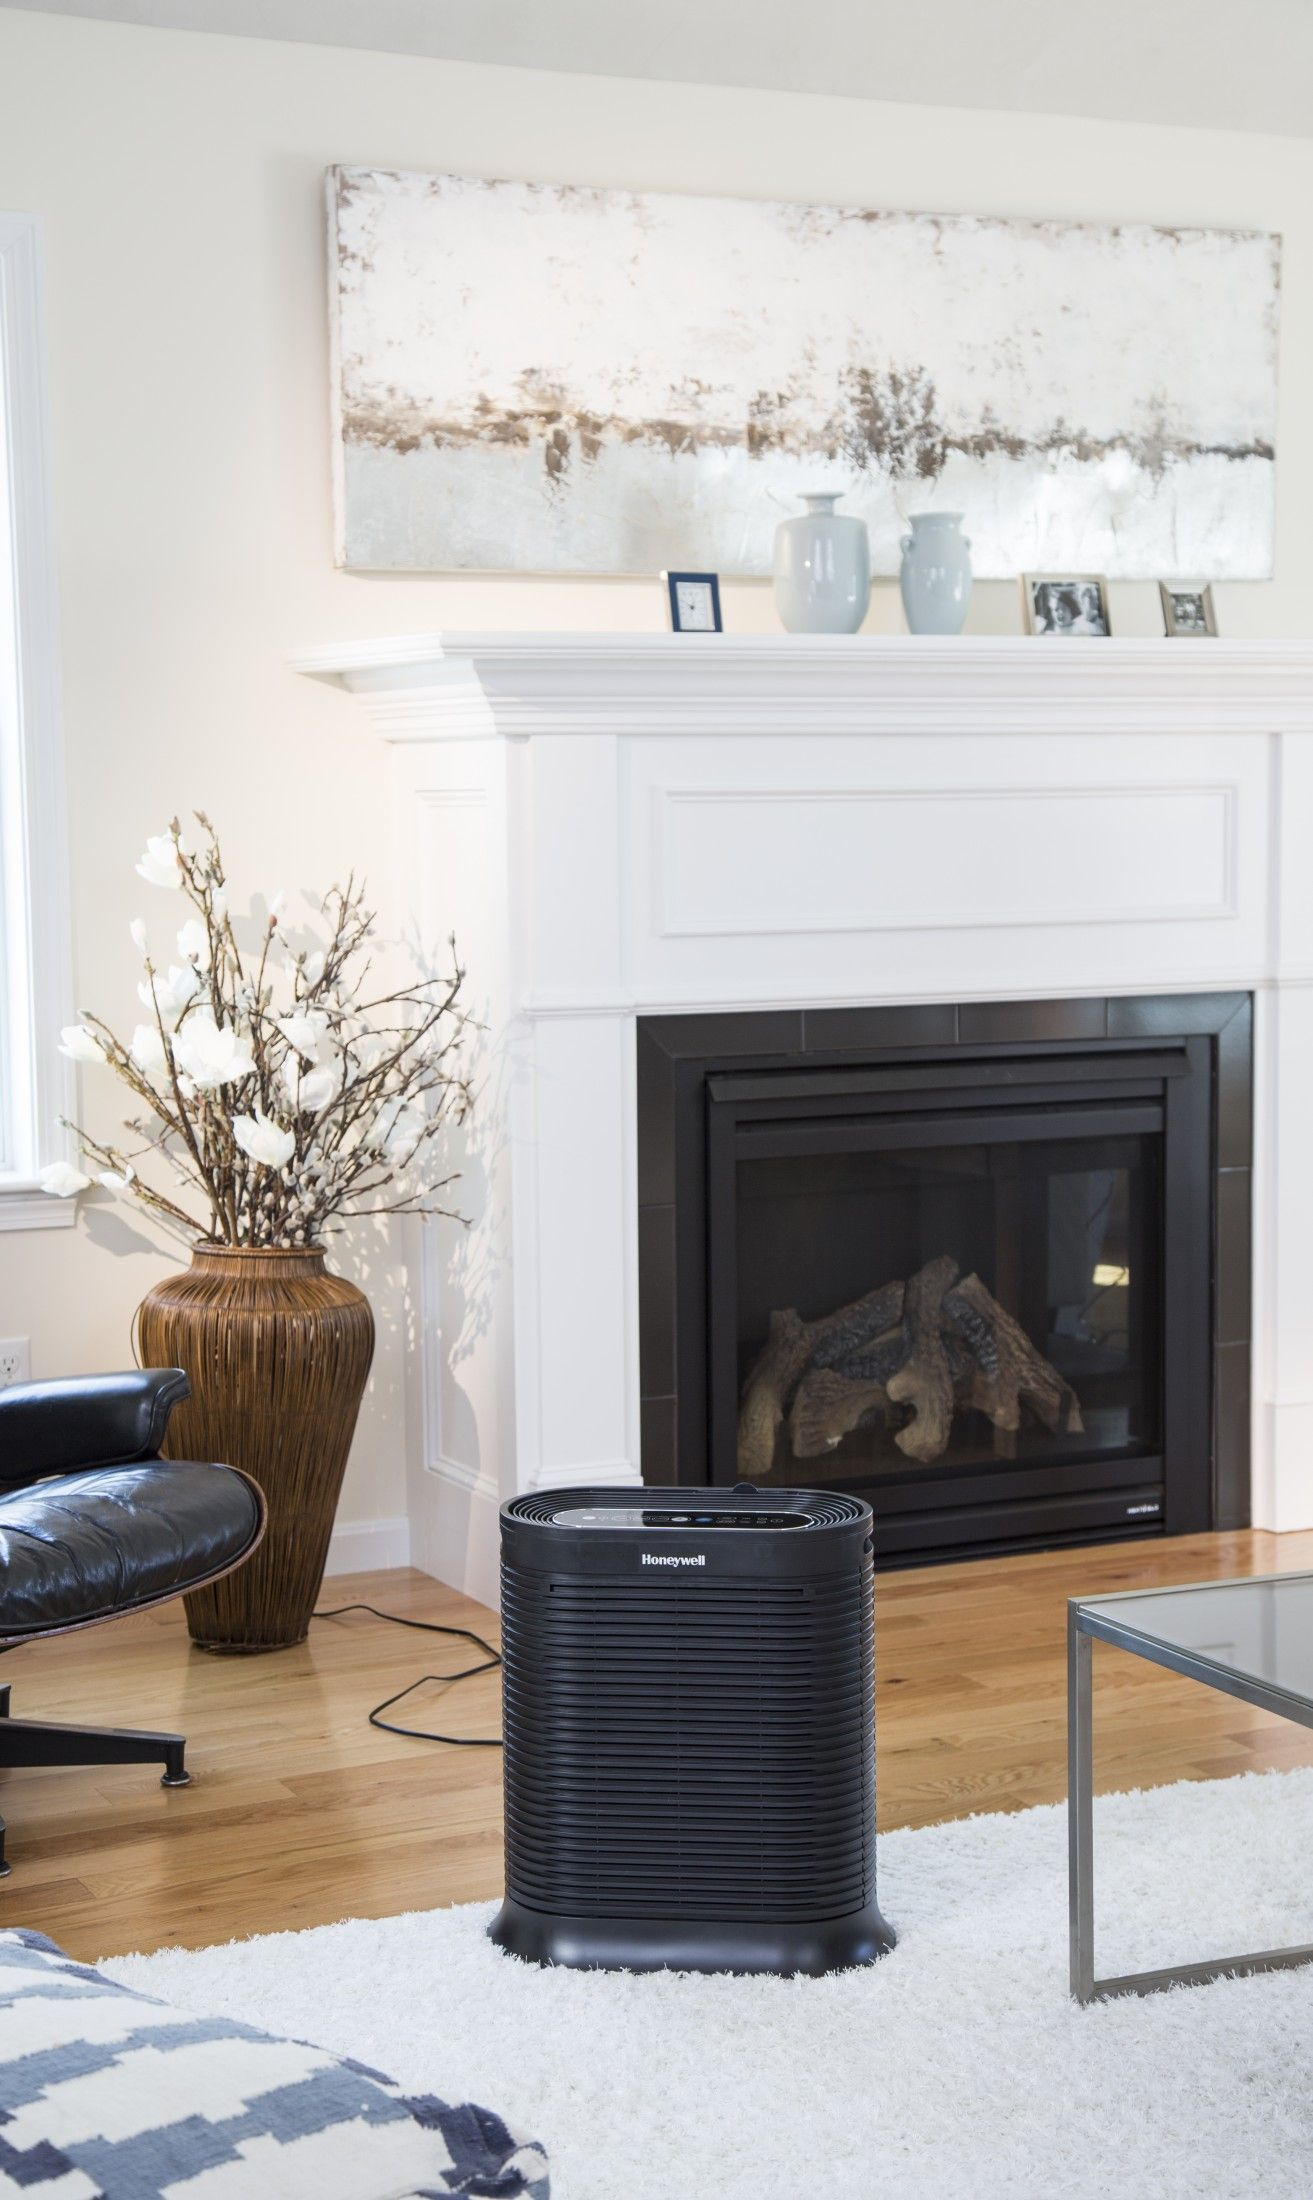 The large room size of this air purifier is perfect for the family room. Sponsored.